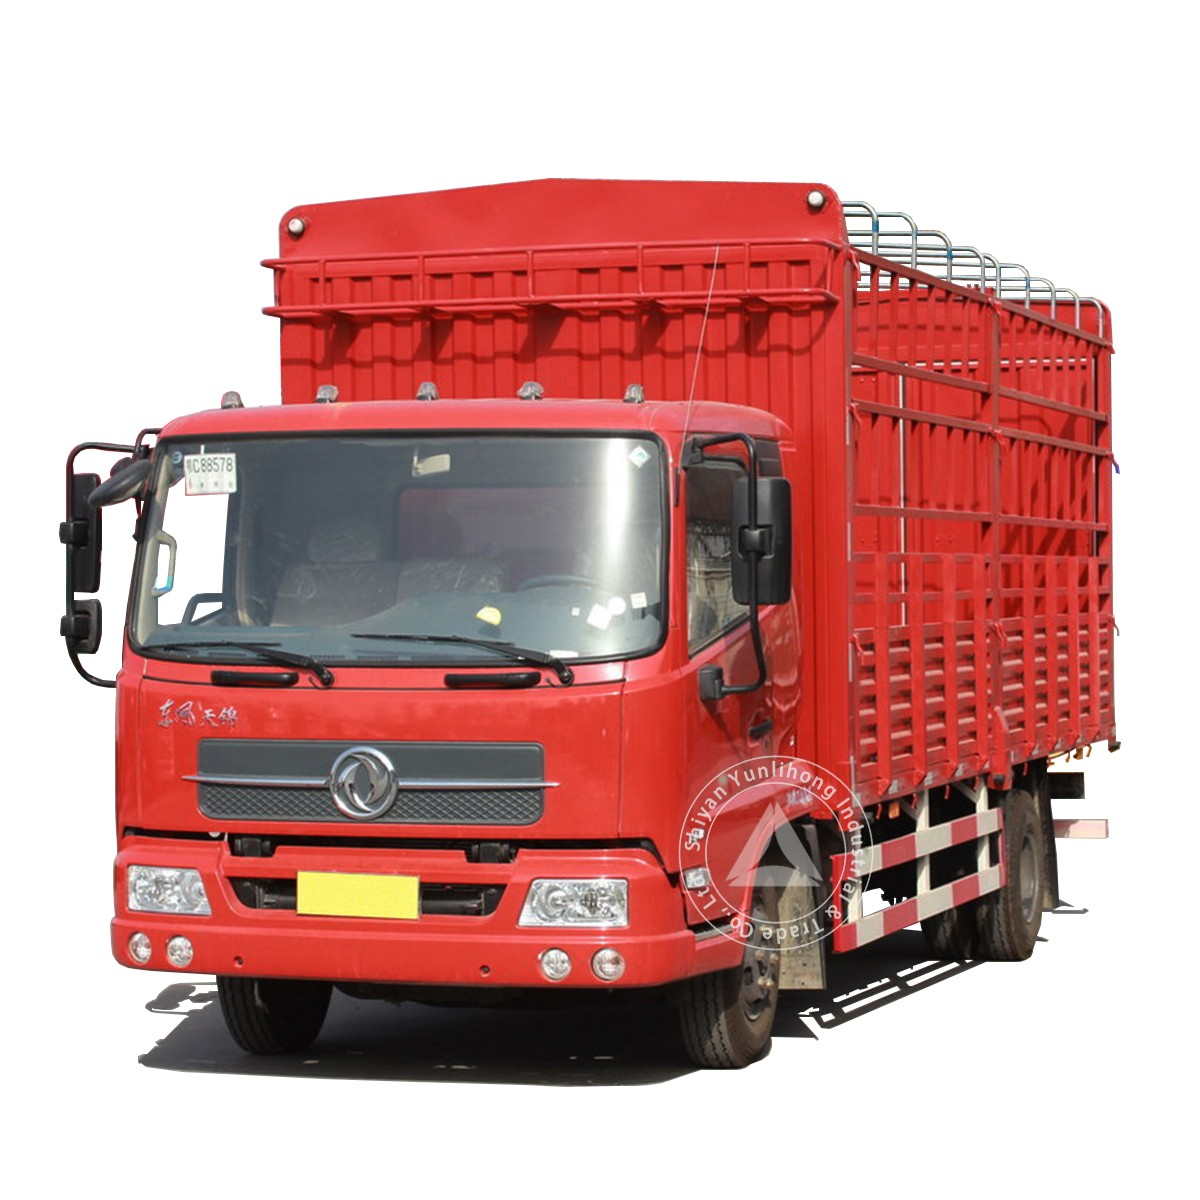 Dongfeng KR 4x2 GVW 11.6 Ton City Distribution Cargo TrucK Chassis